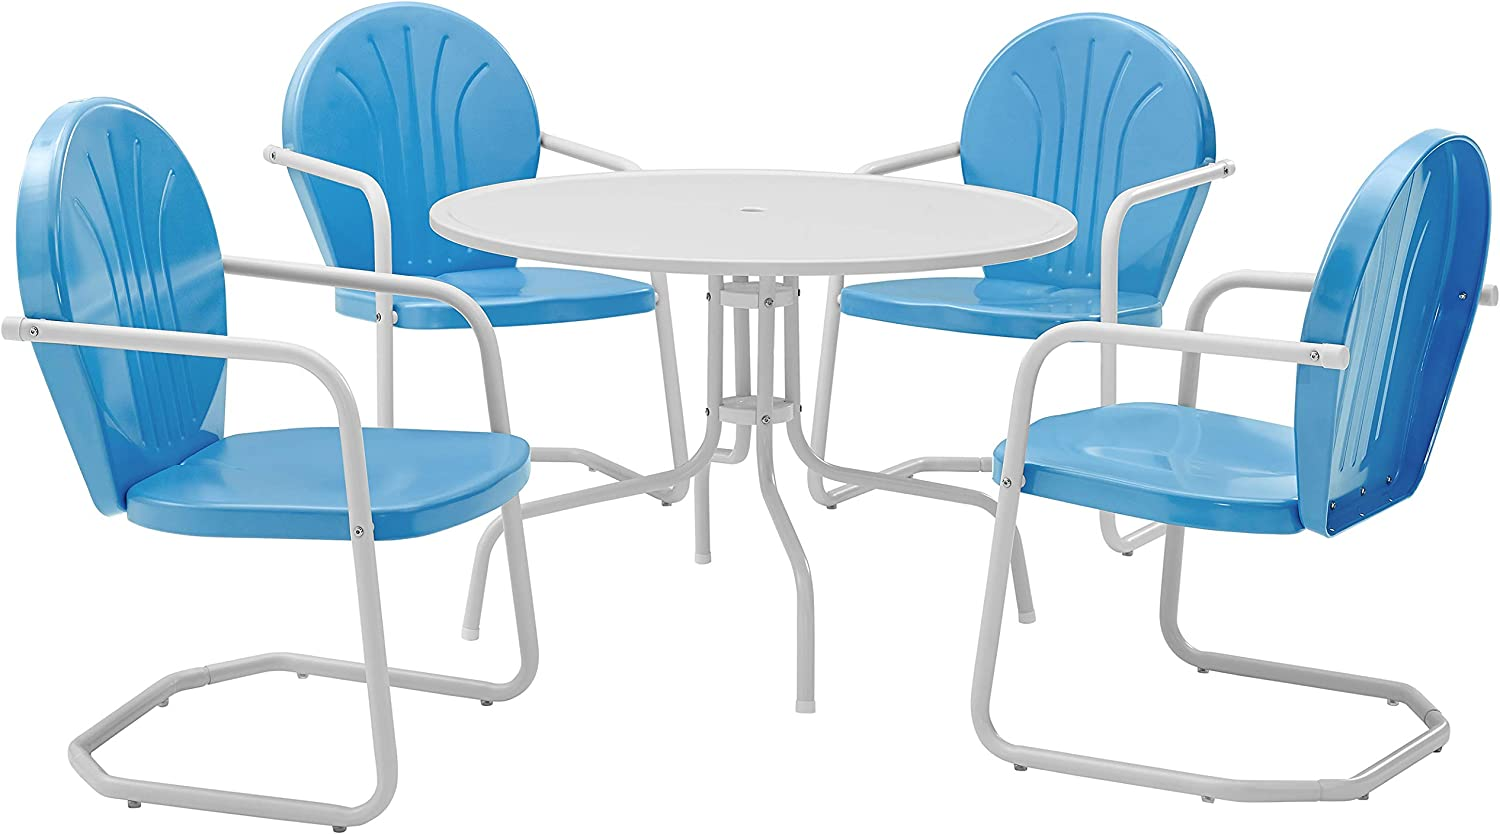 Crosley Furniture Griffith 5-Piece Metal Outdoor Dining Set with Table and Chairs - Sky Blue